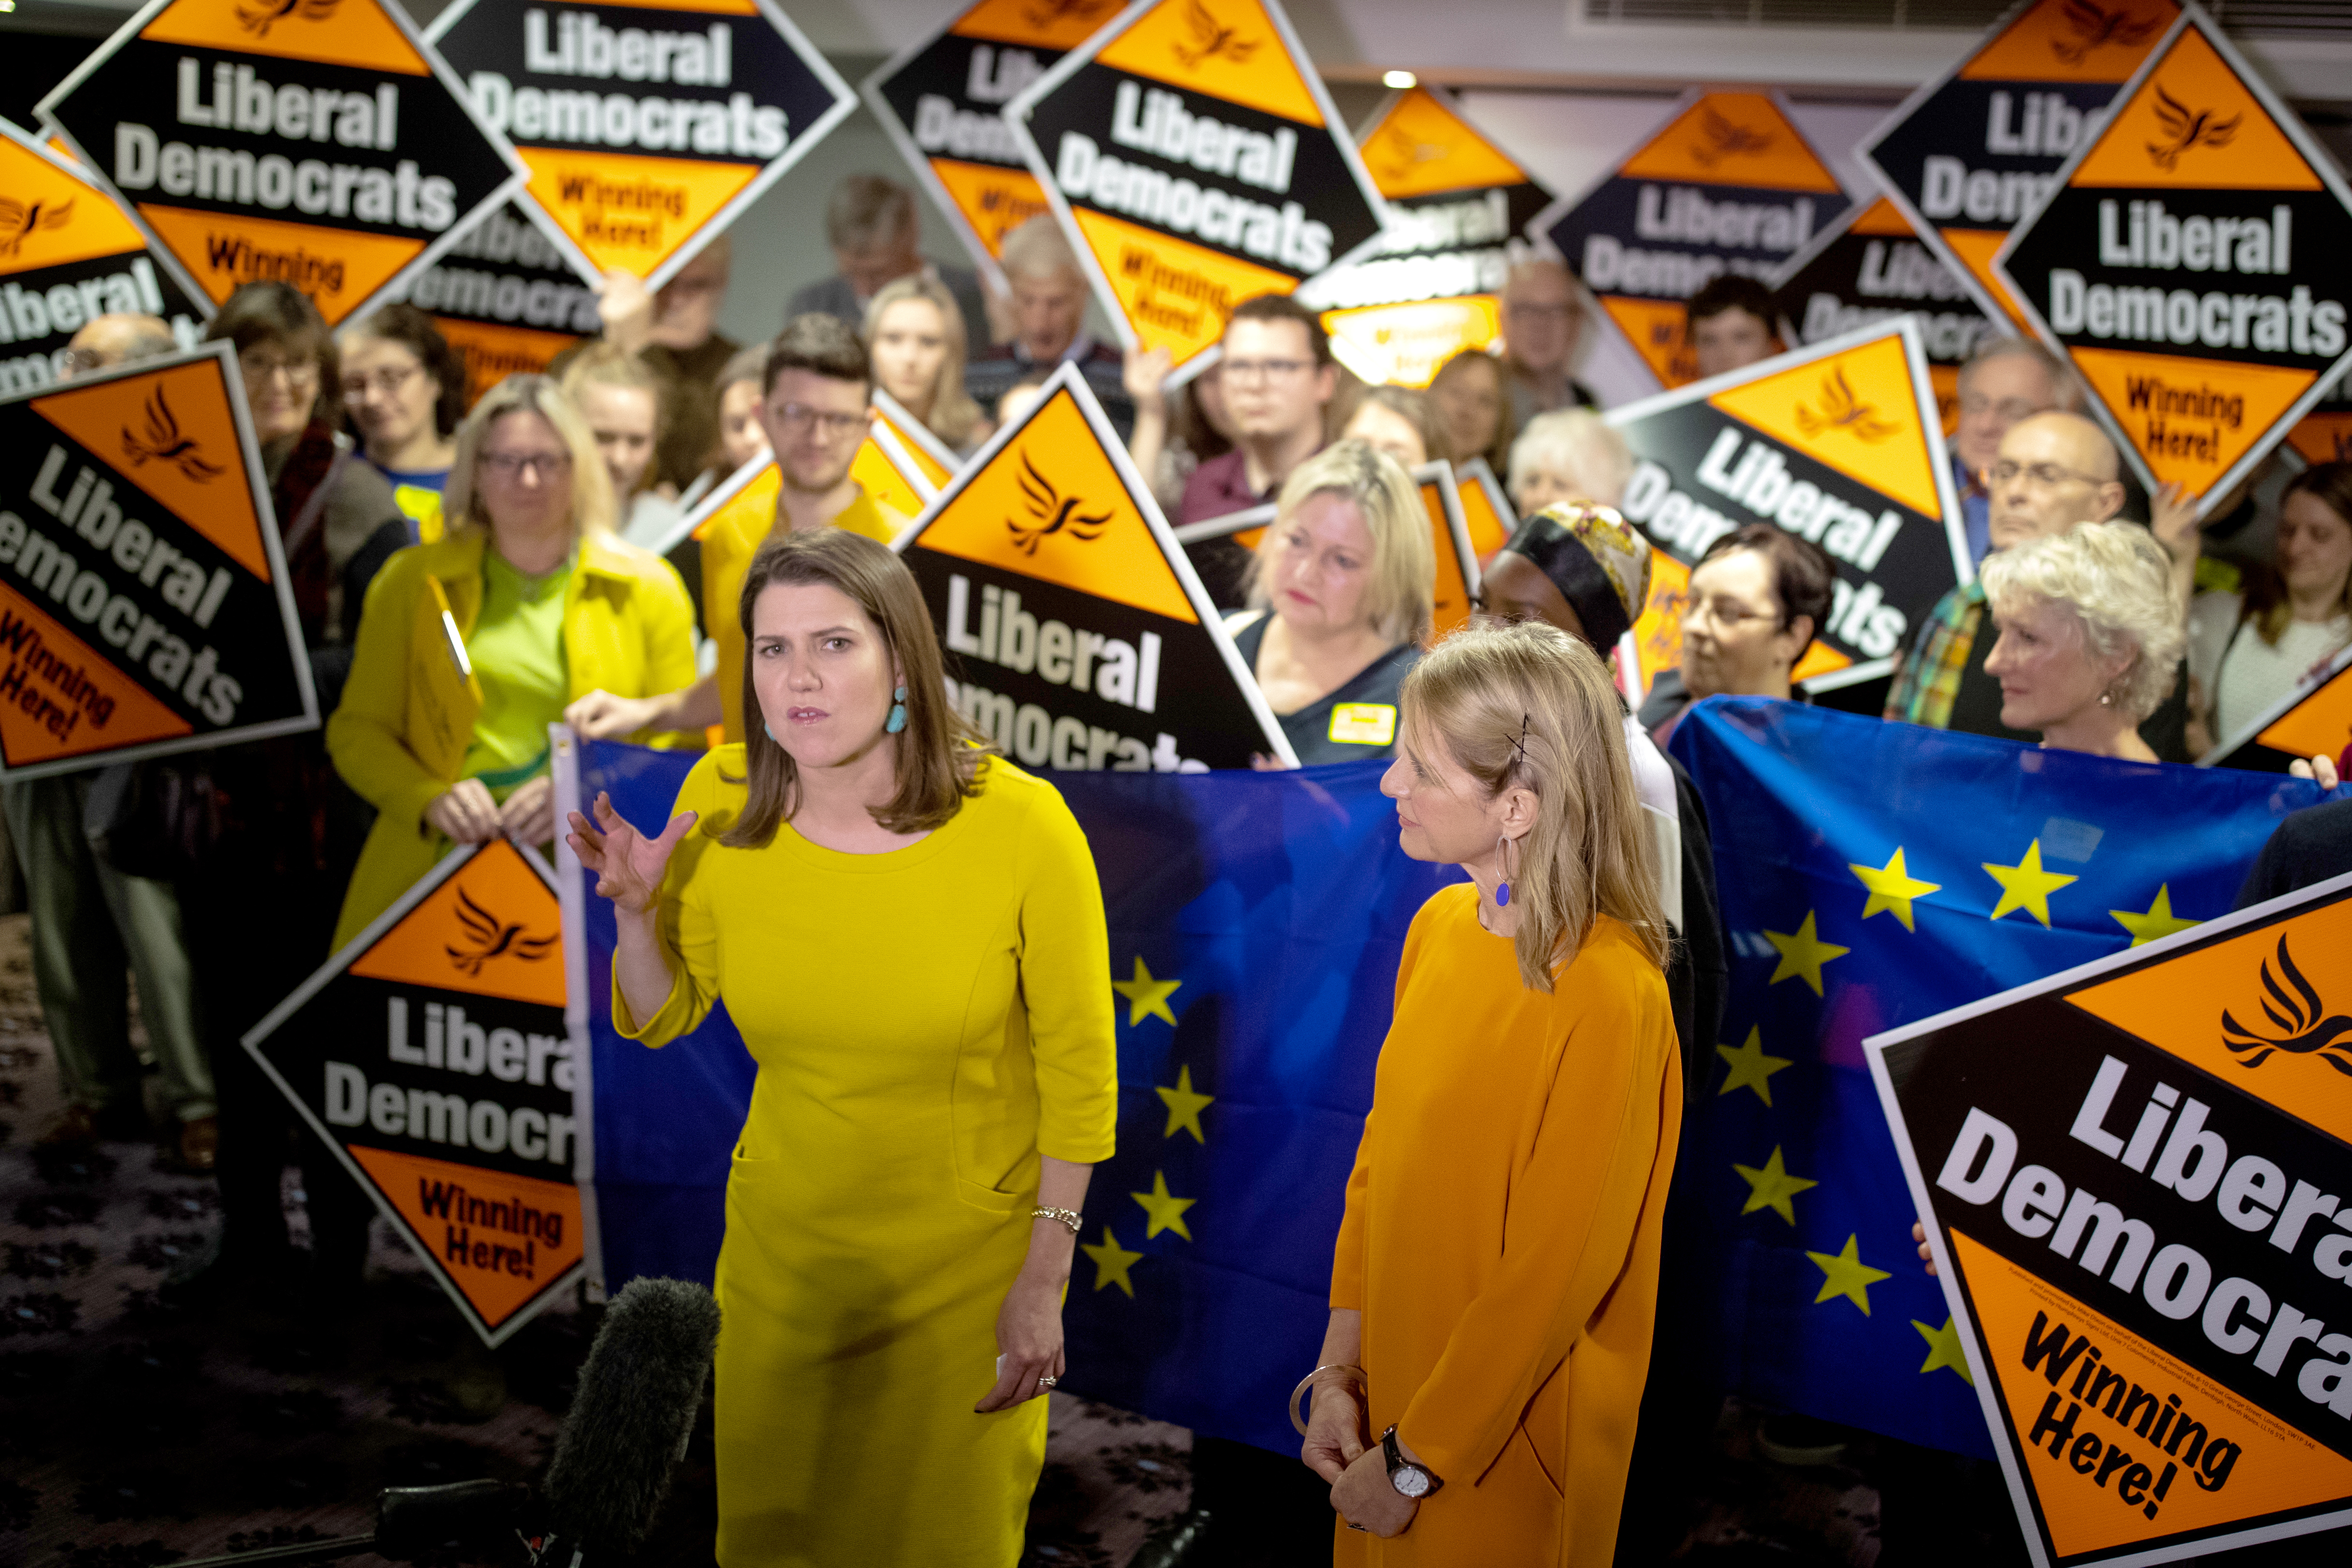 Liberal Democrat Leader Jo Swinson (centre left) speaks during a rally in Bath, while on the General Election campaign trail.